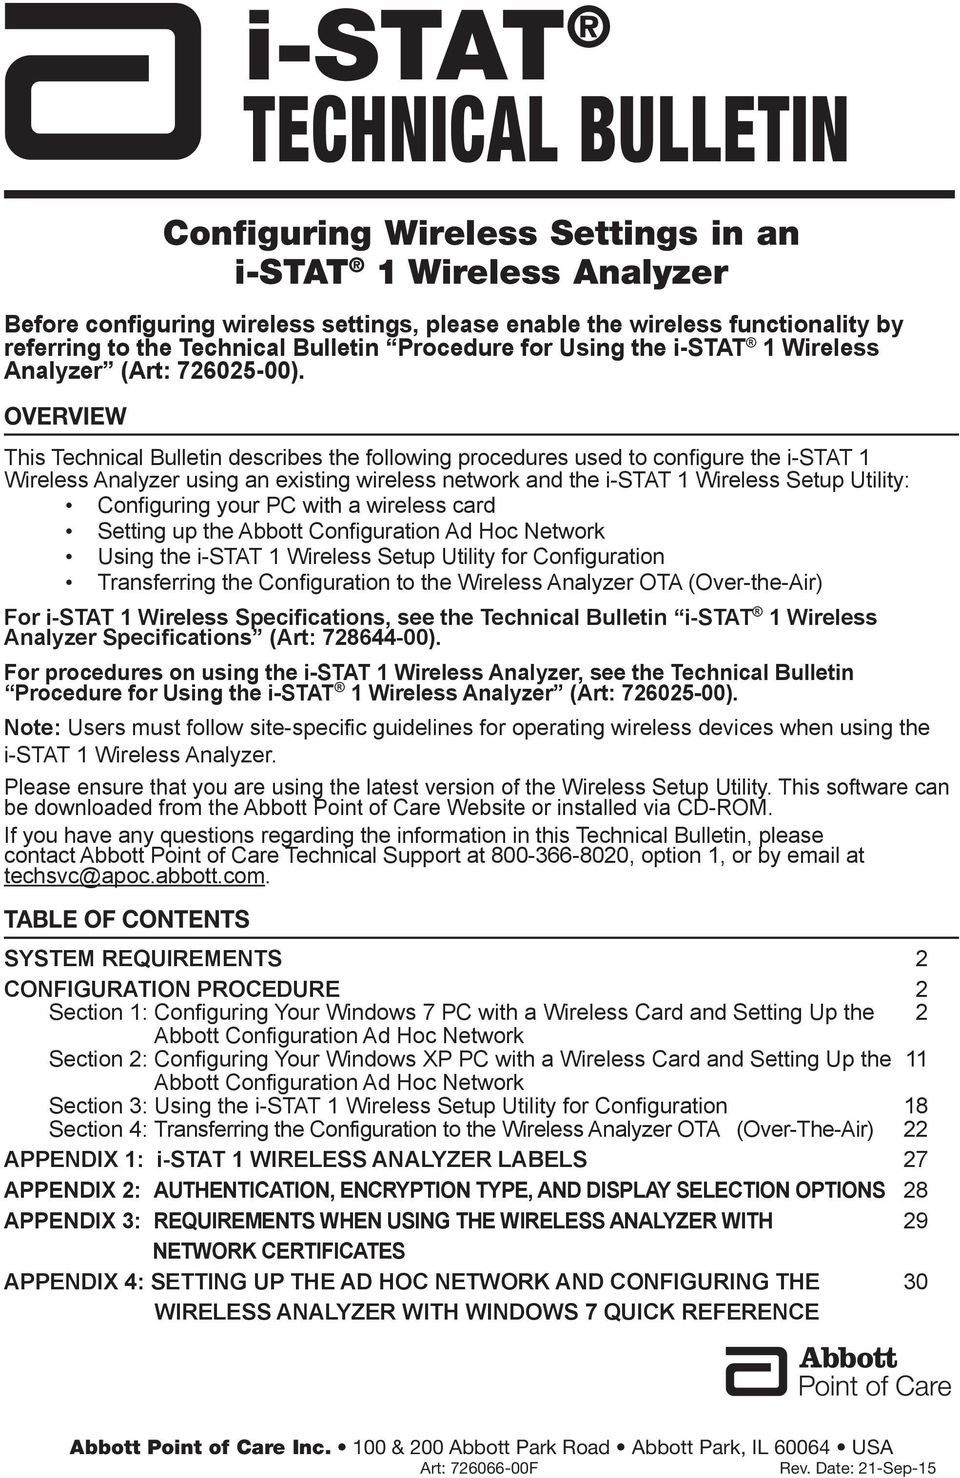 OVERVIEW This Technical Bulletin describes the following procedures used to configure the i-stat 1 Wireless Analyzer using an existing wireless network and the i-stat 1 Wireless Setup Utility: